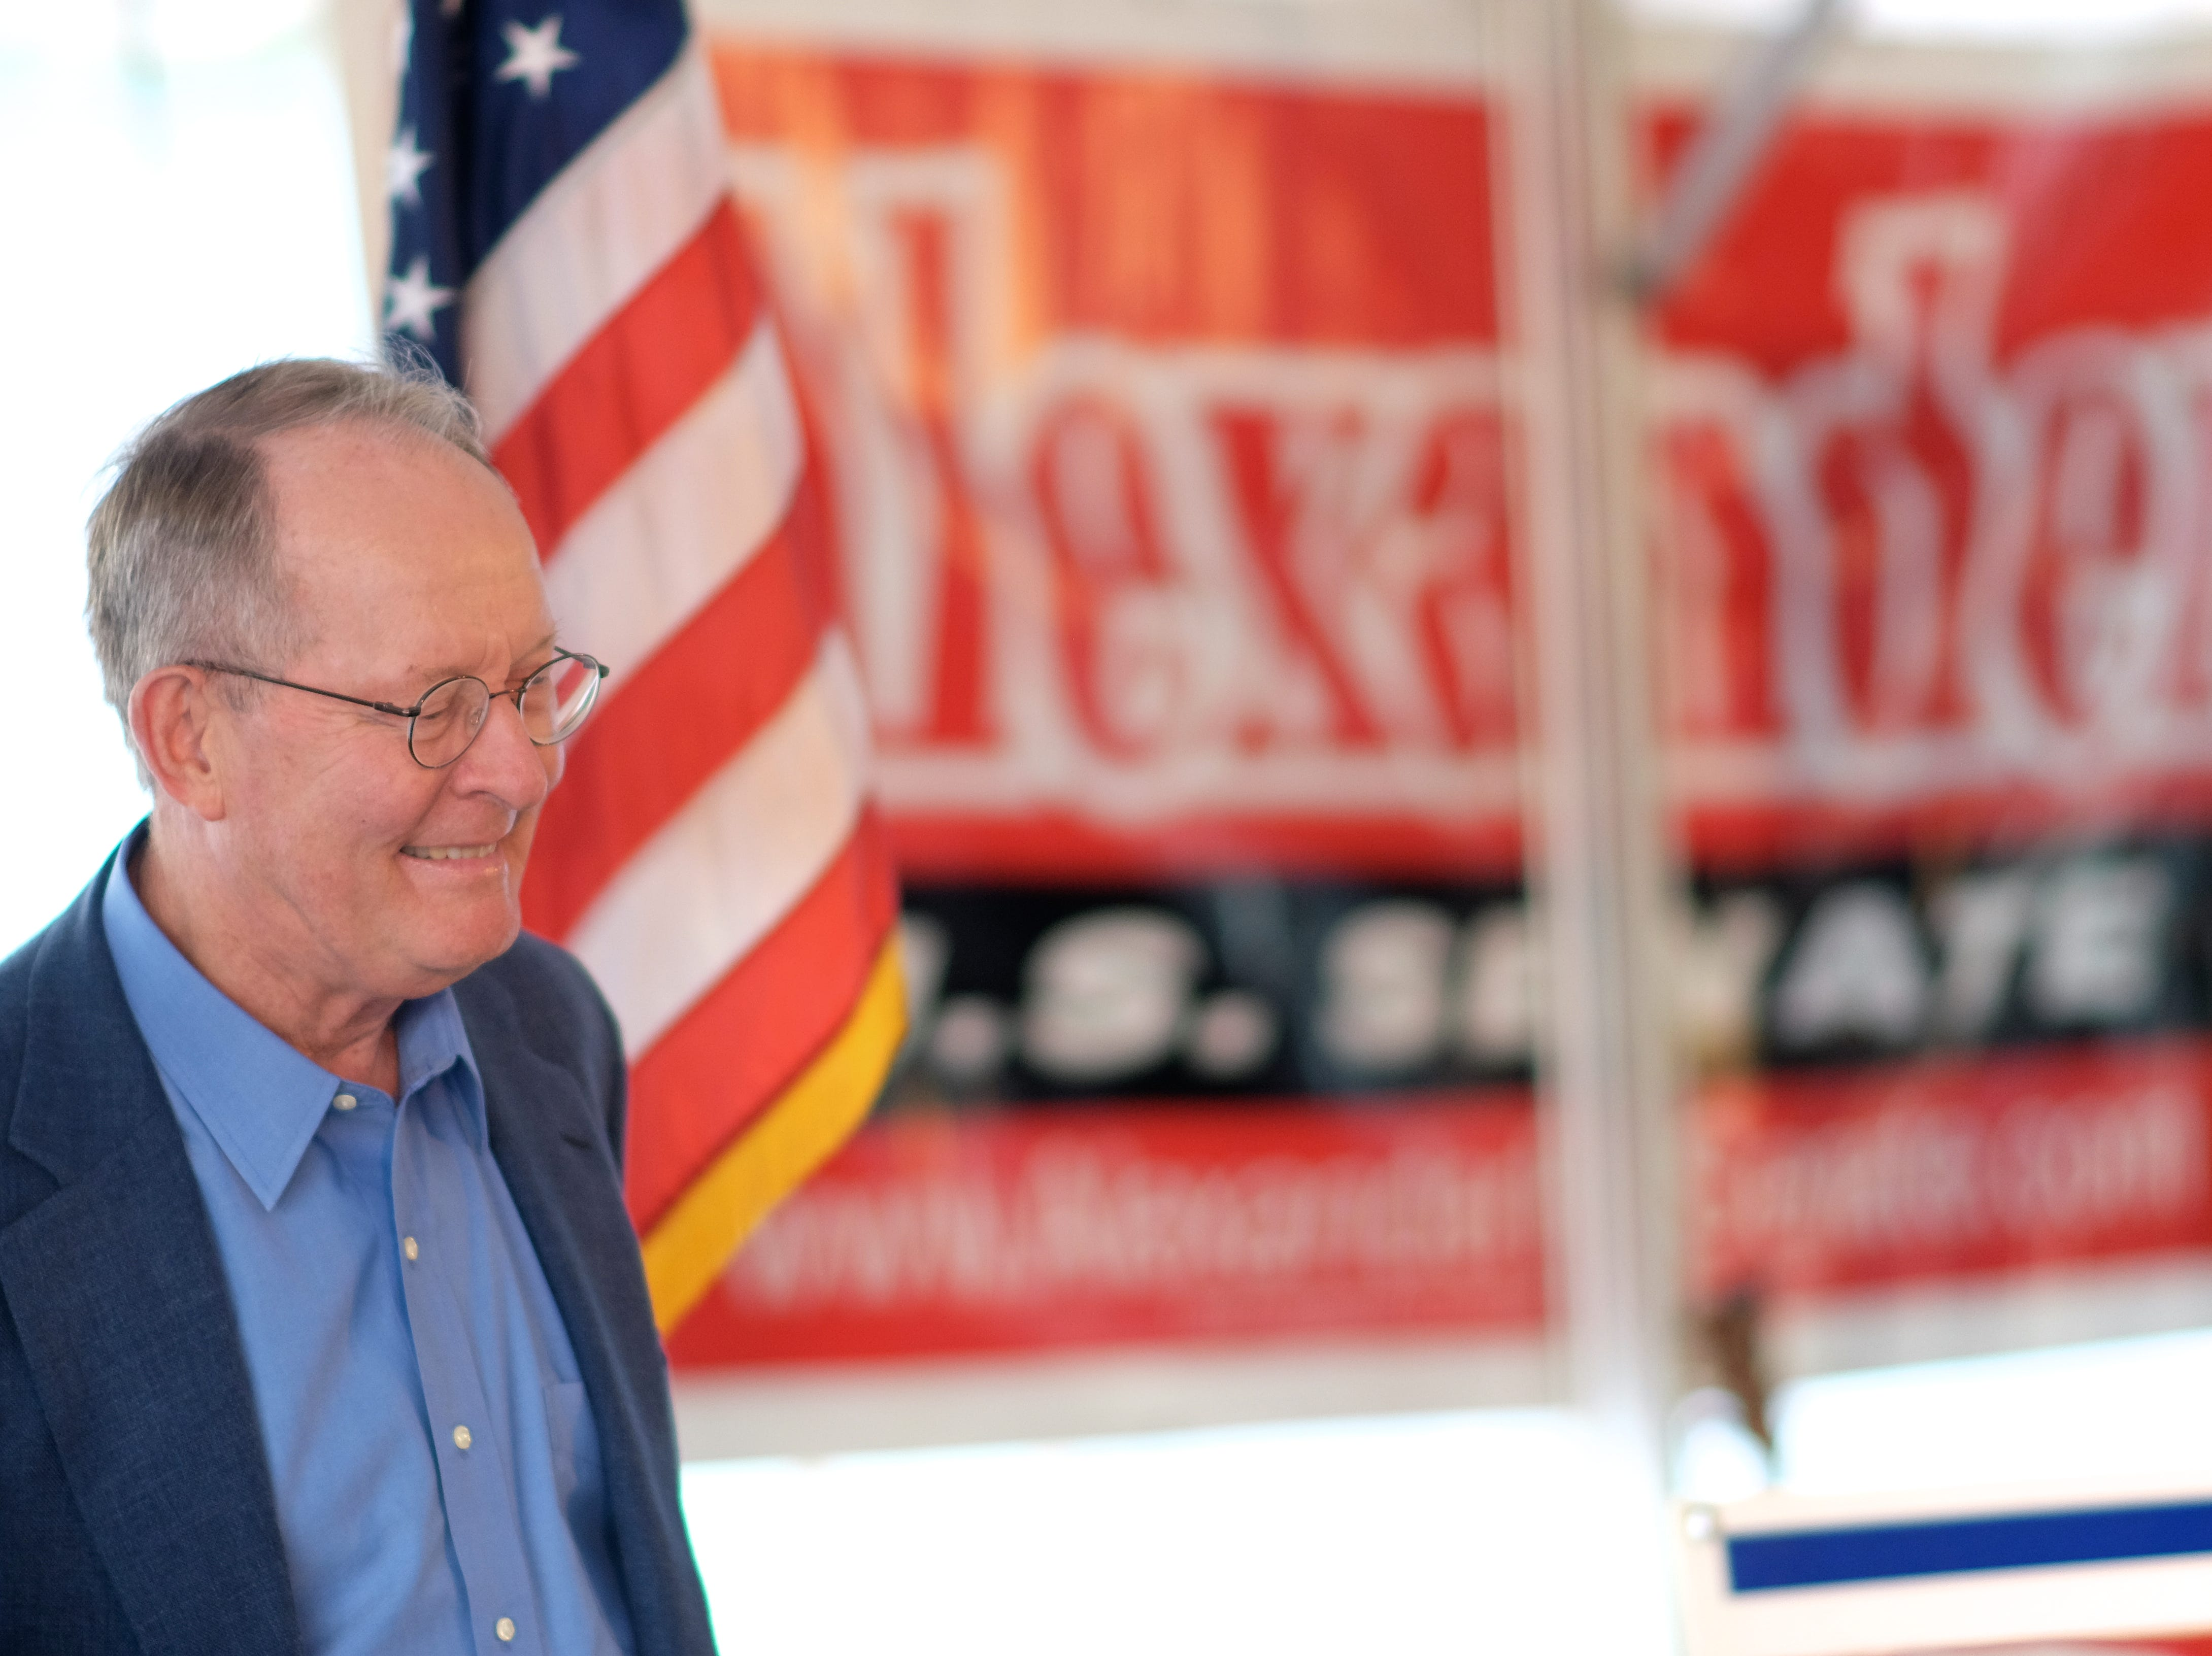 US Senator Lamar Alexander is pictured during the Get Out the Vote Rally Tuesday, October 14, 2014 at Springbrook Park in Alcoa, Tenn.